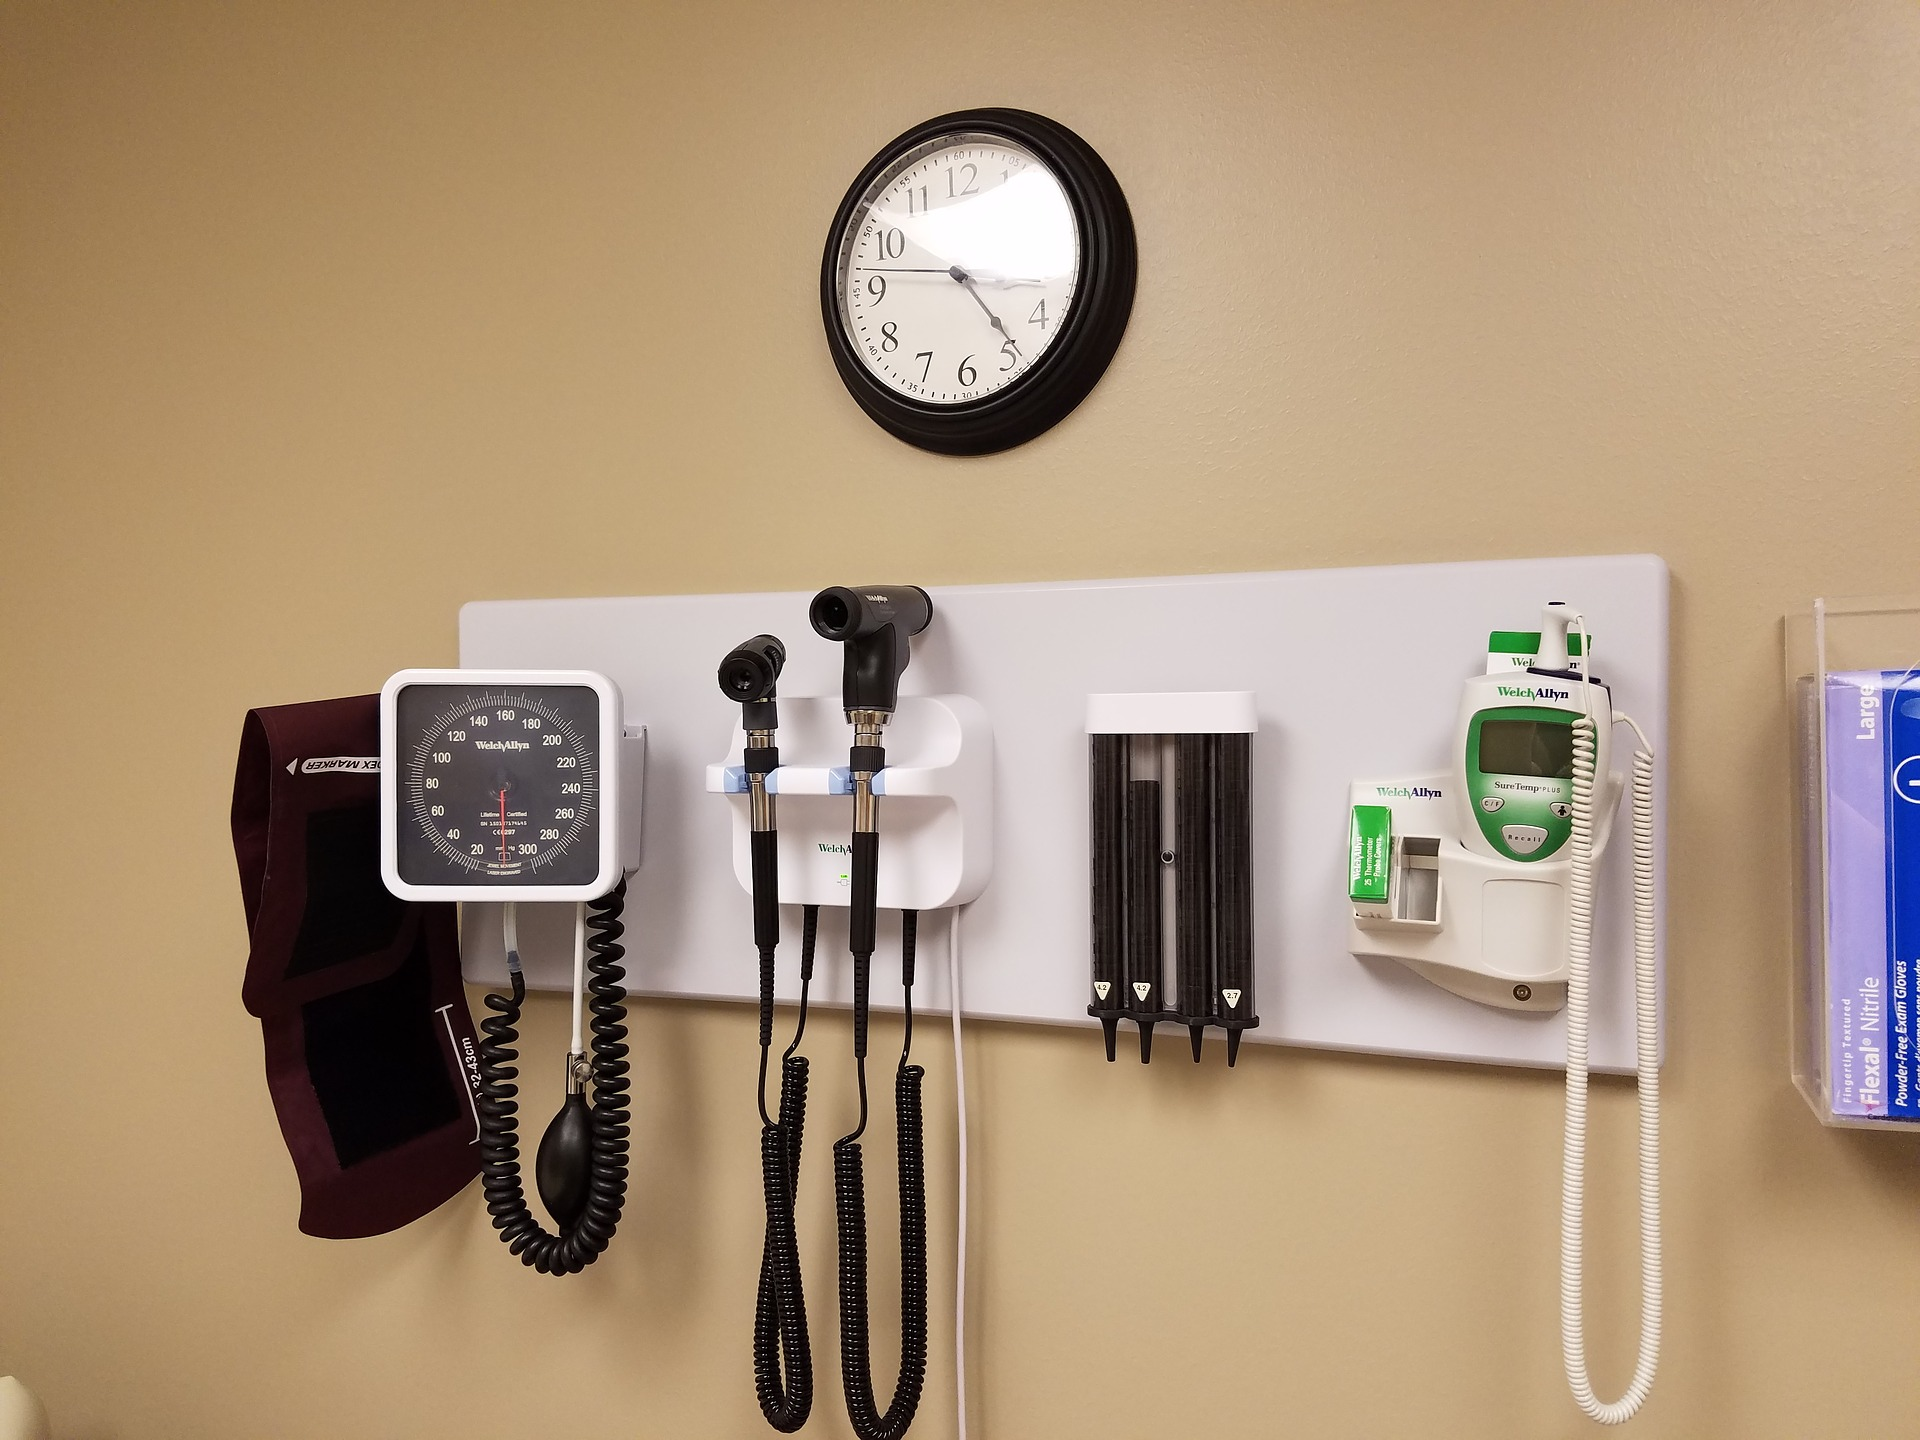 Tips to help stay safe when accessing medical care